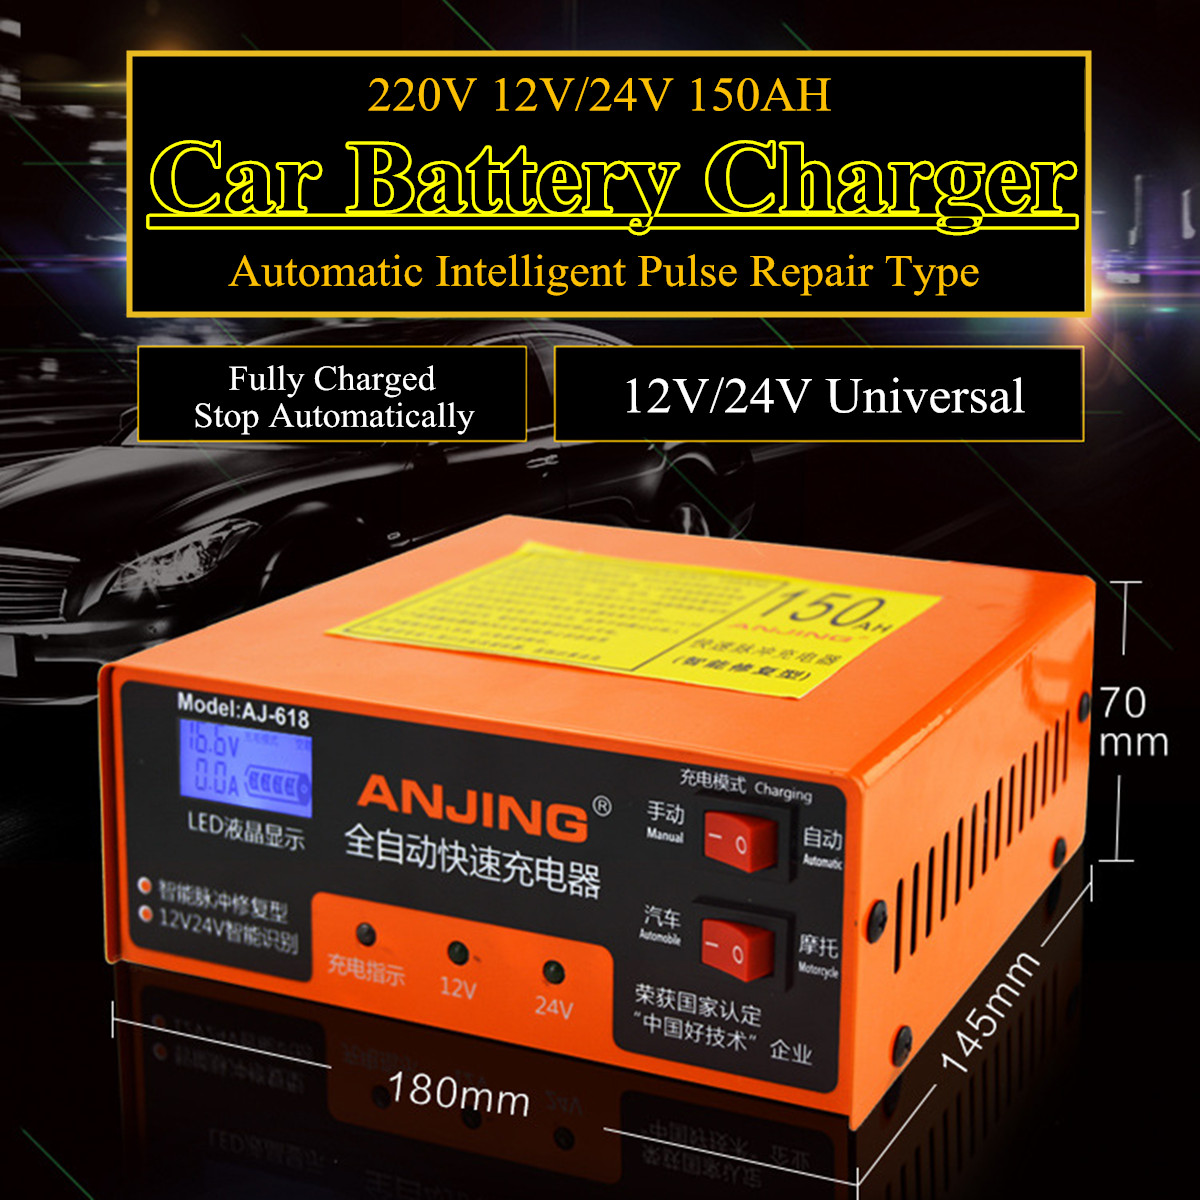 220V 150AH Smart Battery Charger Intelligent Pulse Repair Type Maintainer Led Display